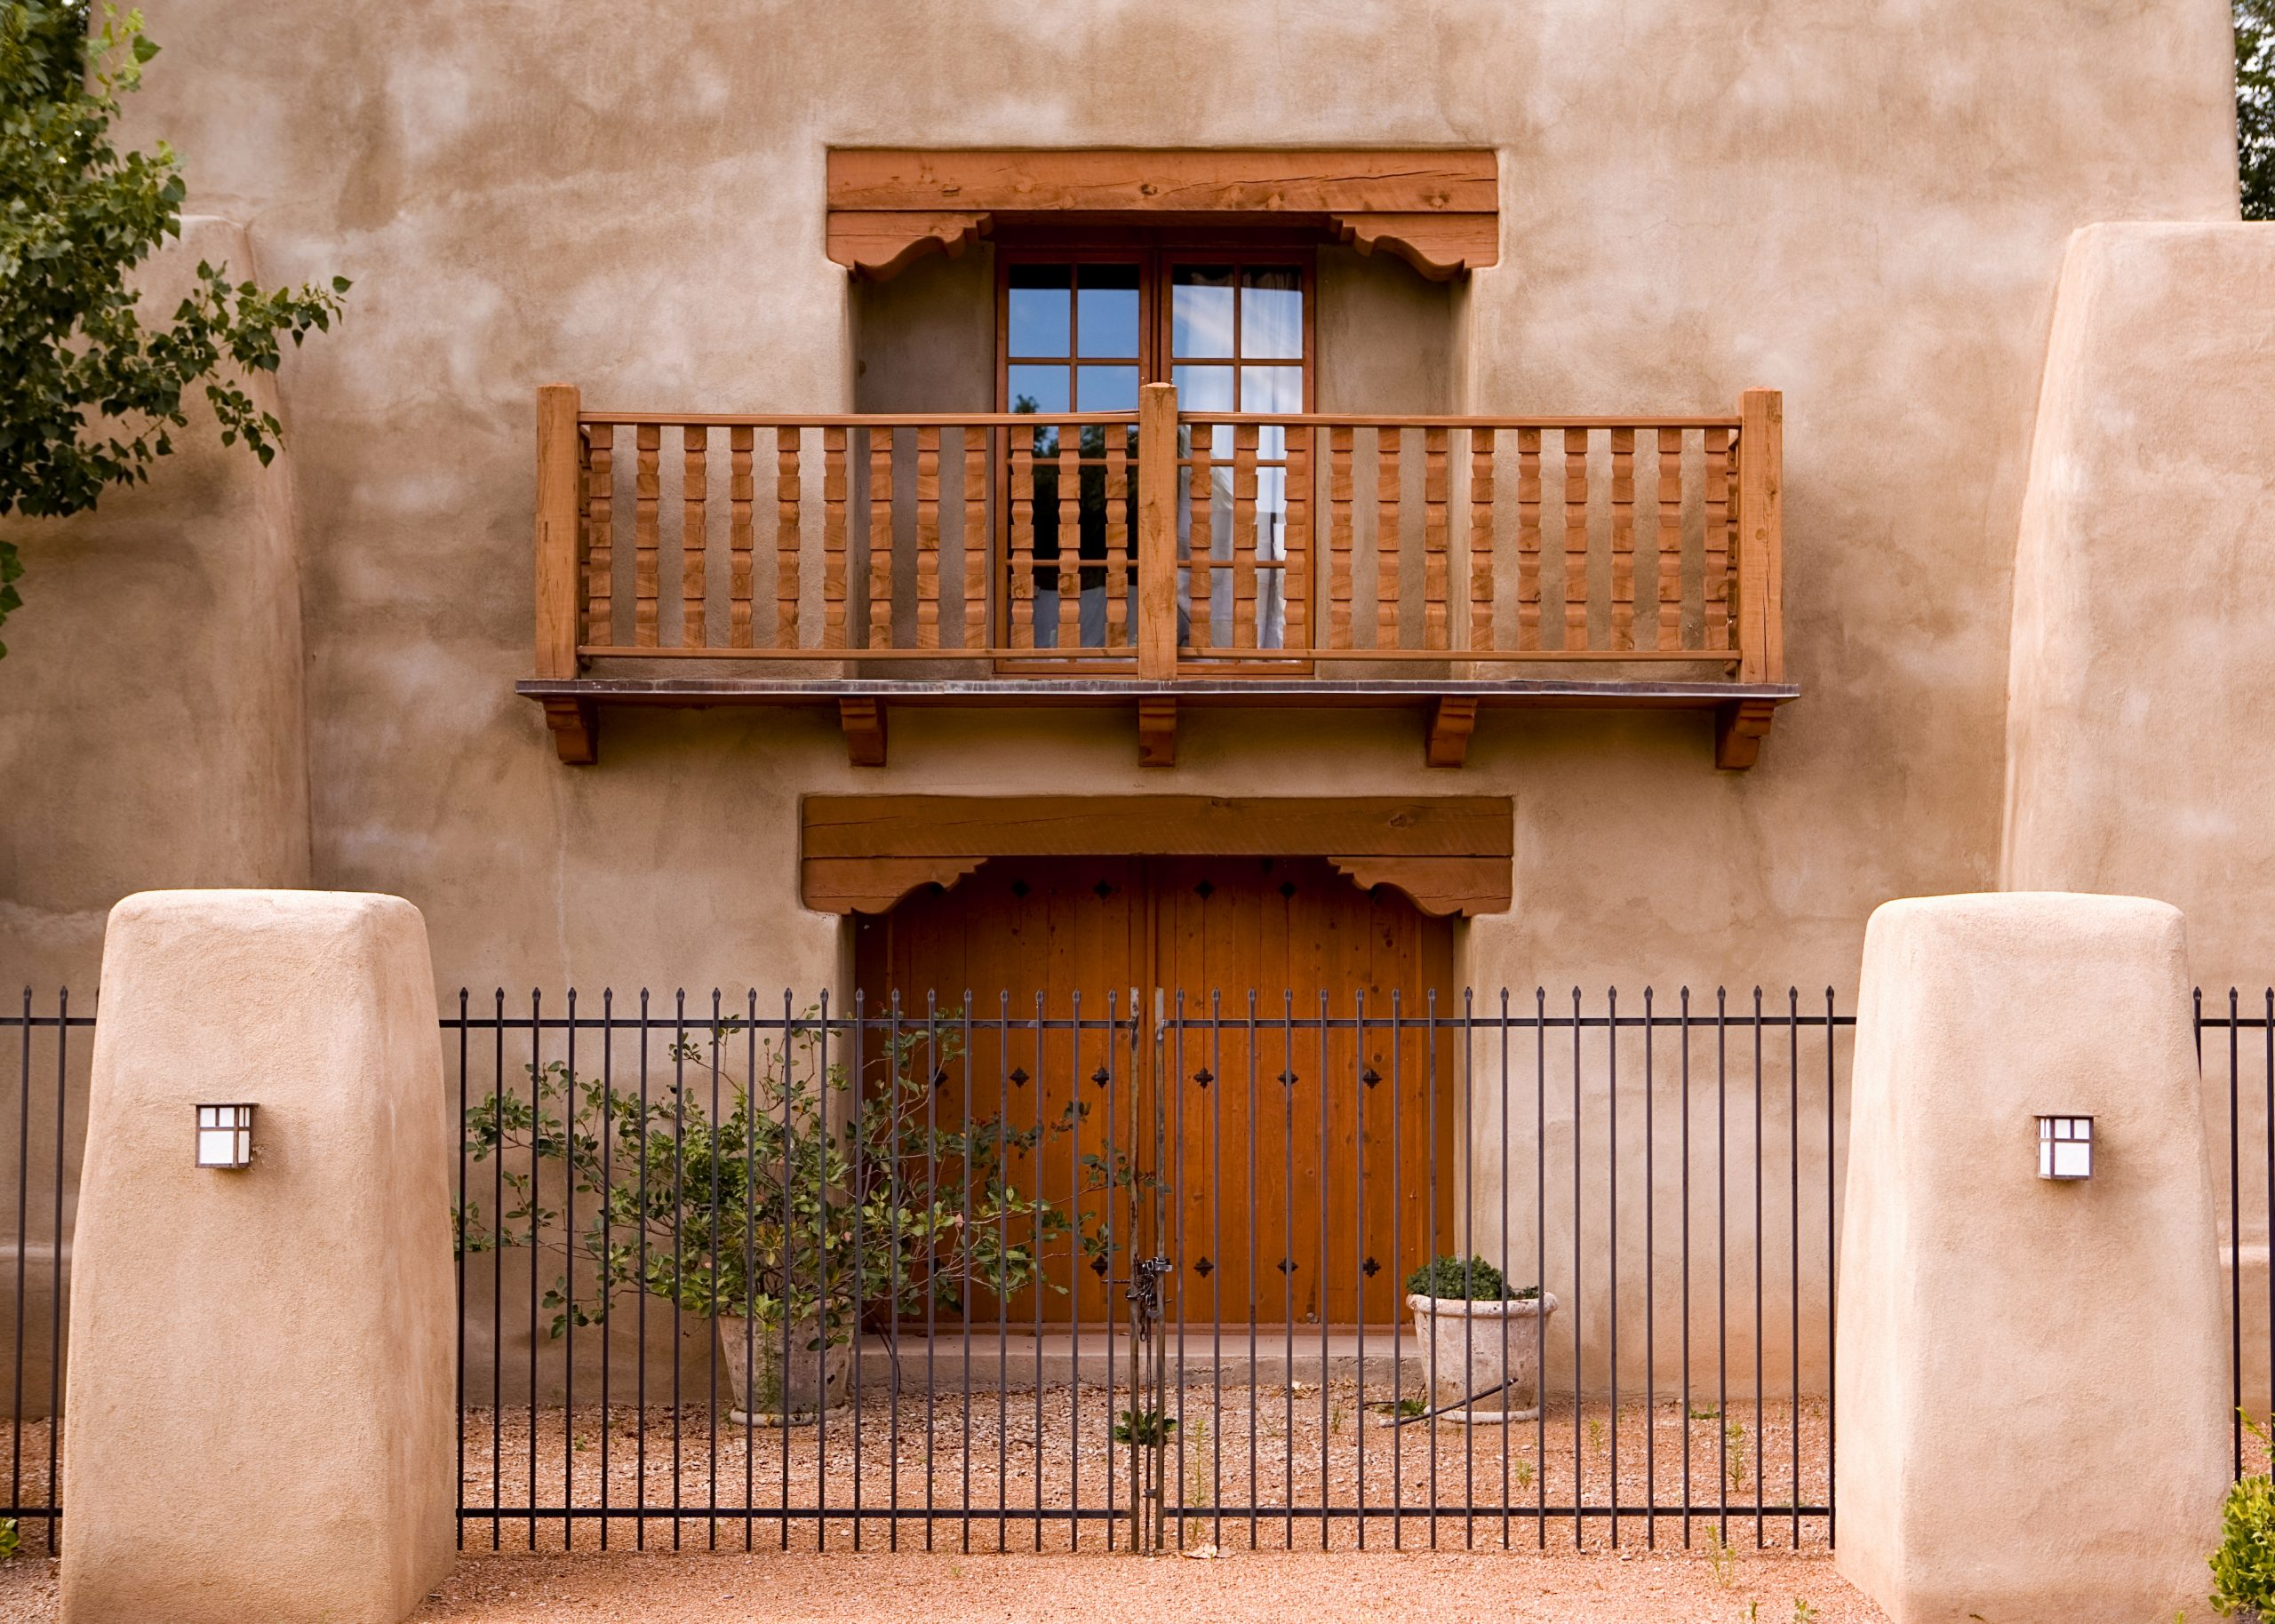 A beatiful Adobe-styled home located in Nob Hill, Albuquerque, New Mexico.